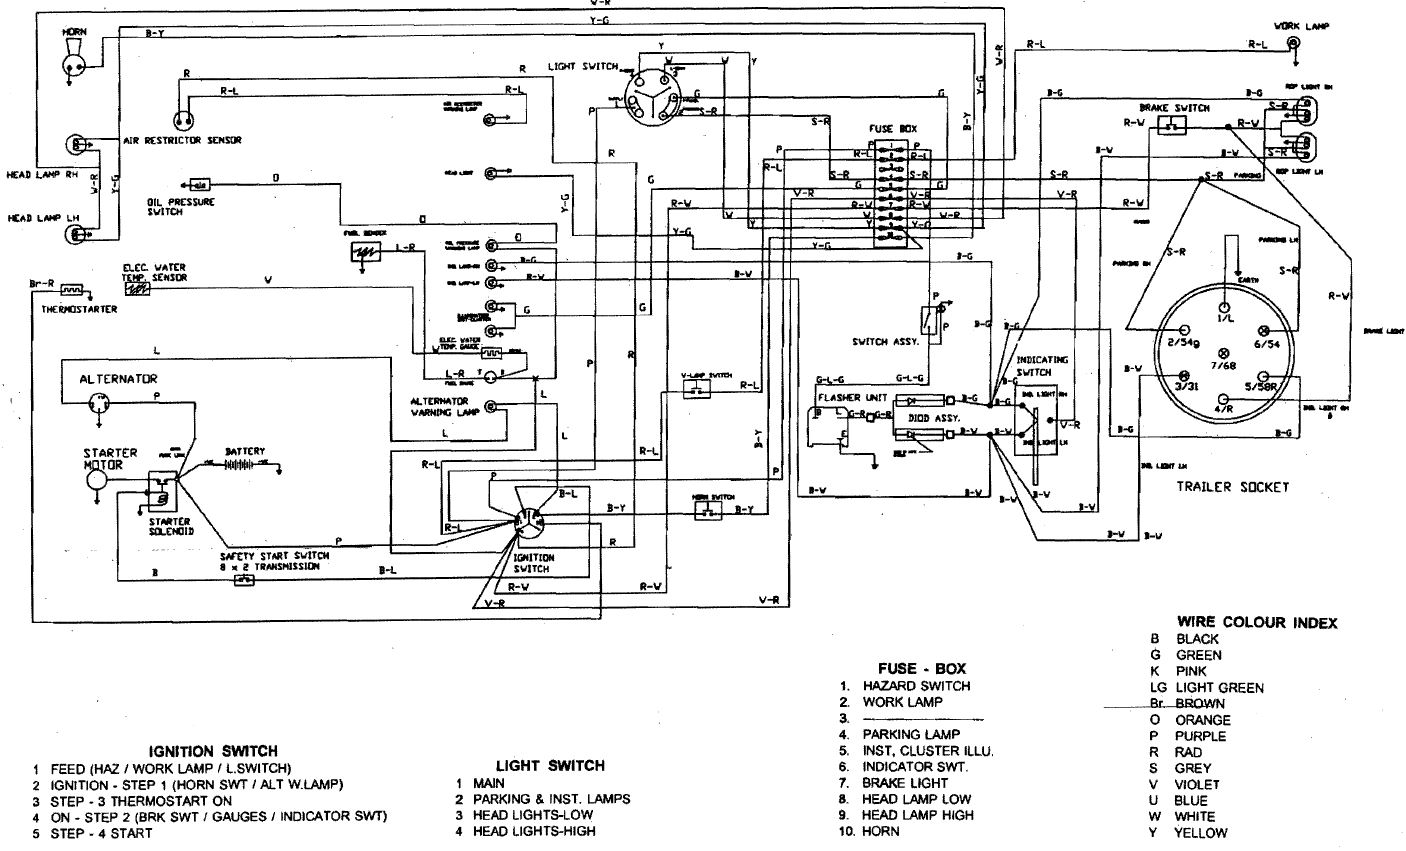 hight resolution of ignition switch wiring diagram hitachi tractor wiring diagram tractor wiring diagrams